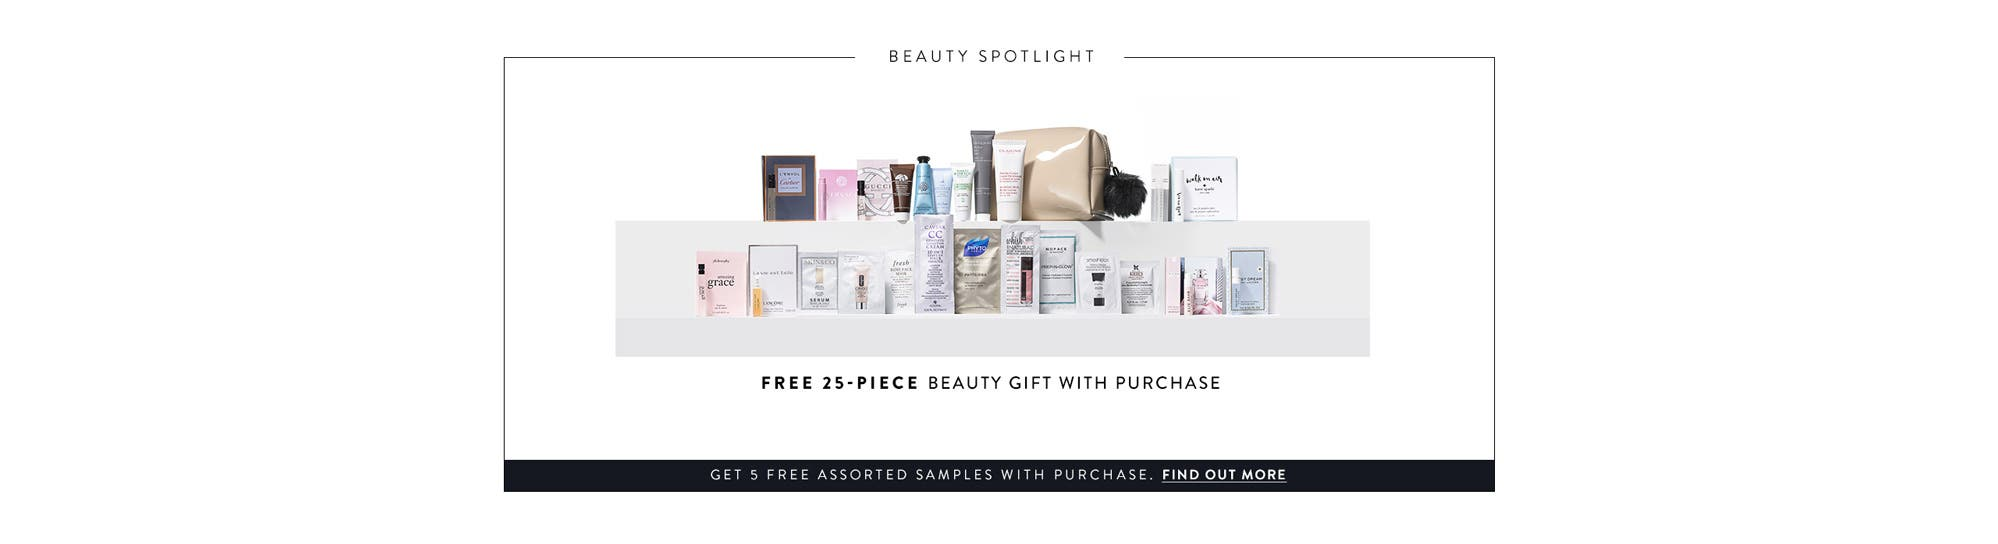 Free 25-piece gift with any $150 beauty or fragrance purchase. Get 5 free assorted samples with purchase. Find out more.